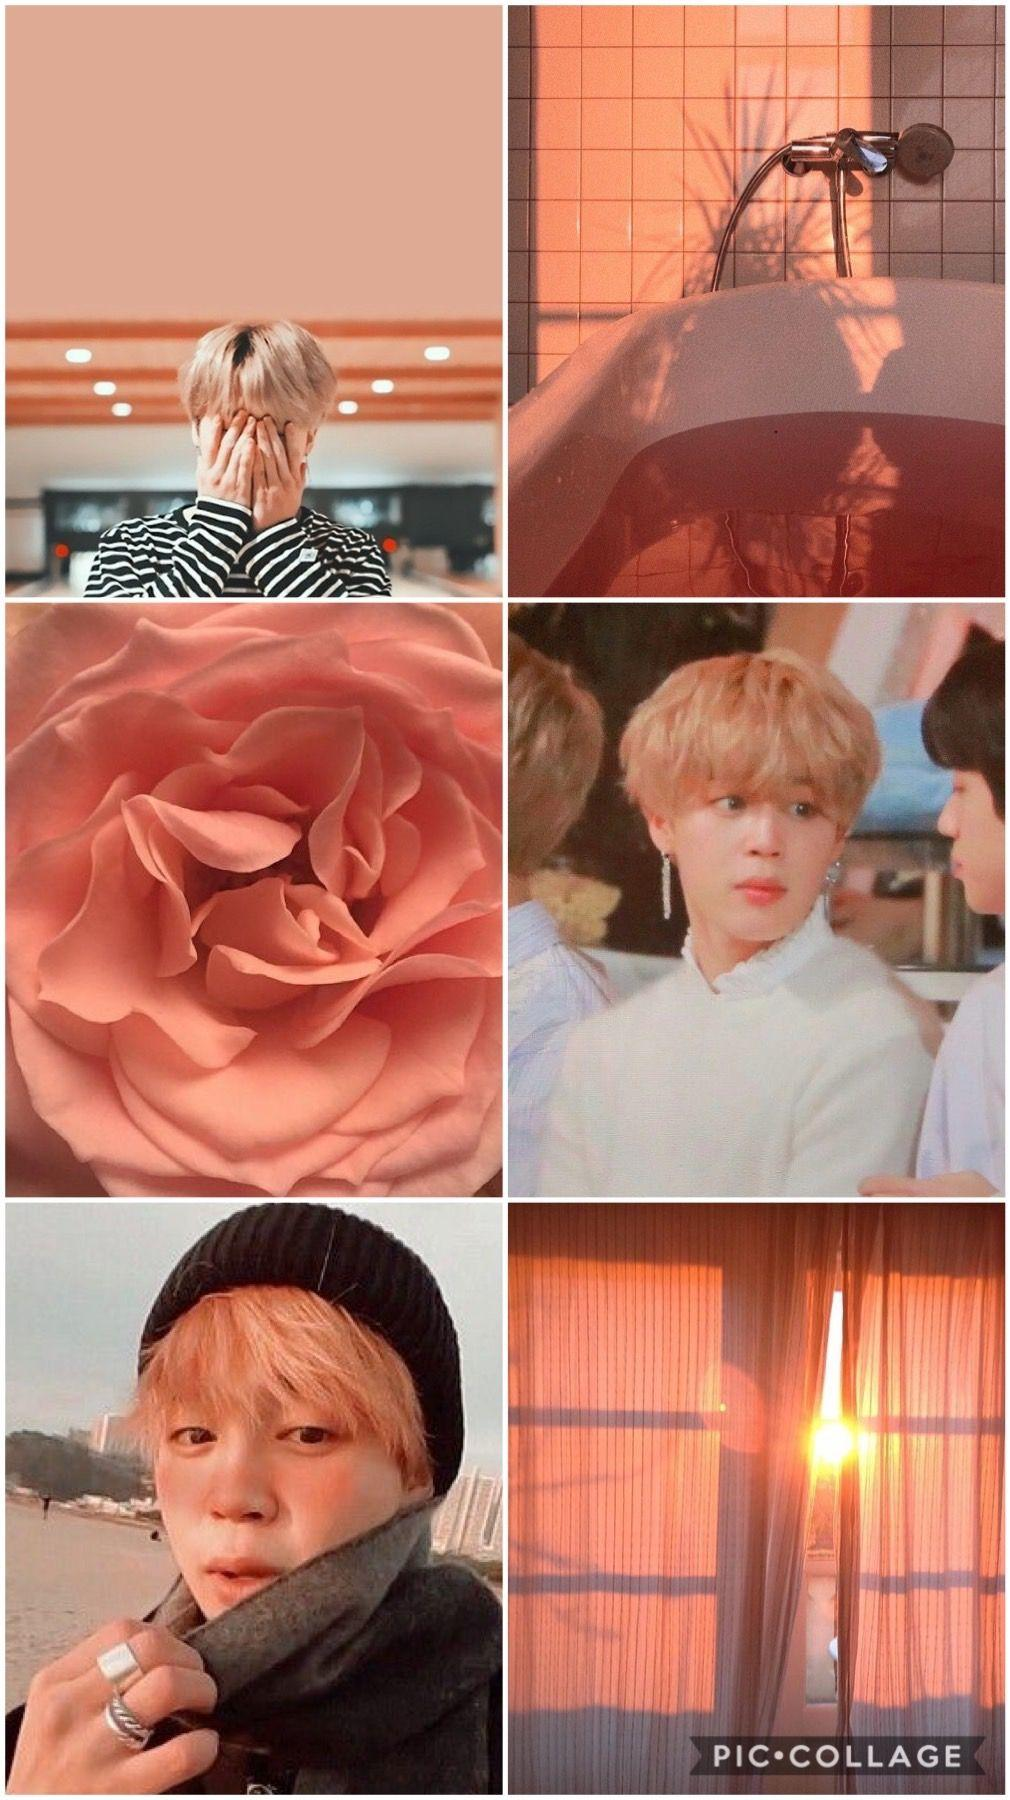 Download and use 10000+ car stock videos for free. Park Jimin Aesthetic Wallpapers - Wallpaper Cave